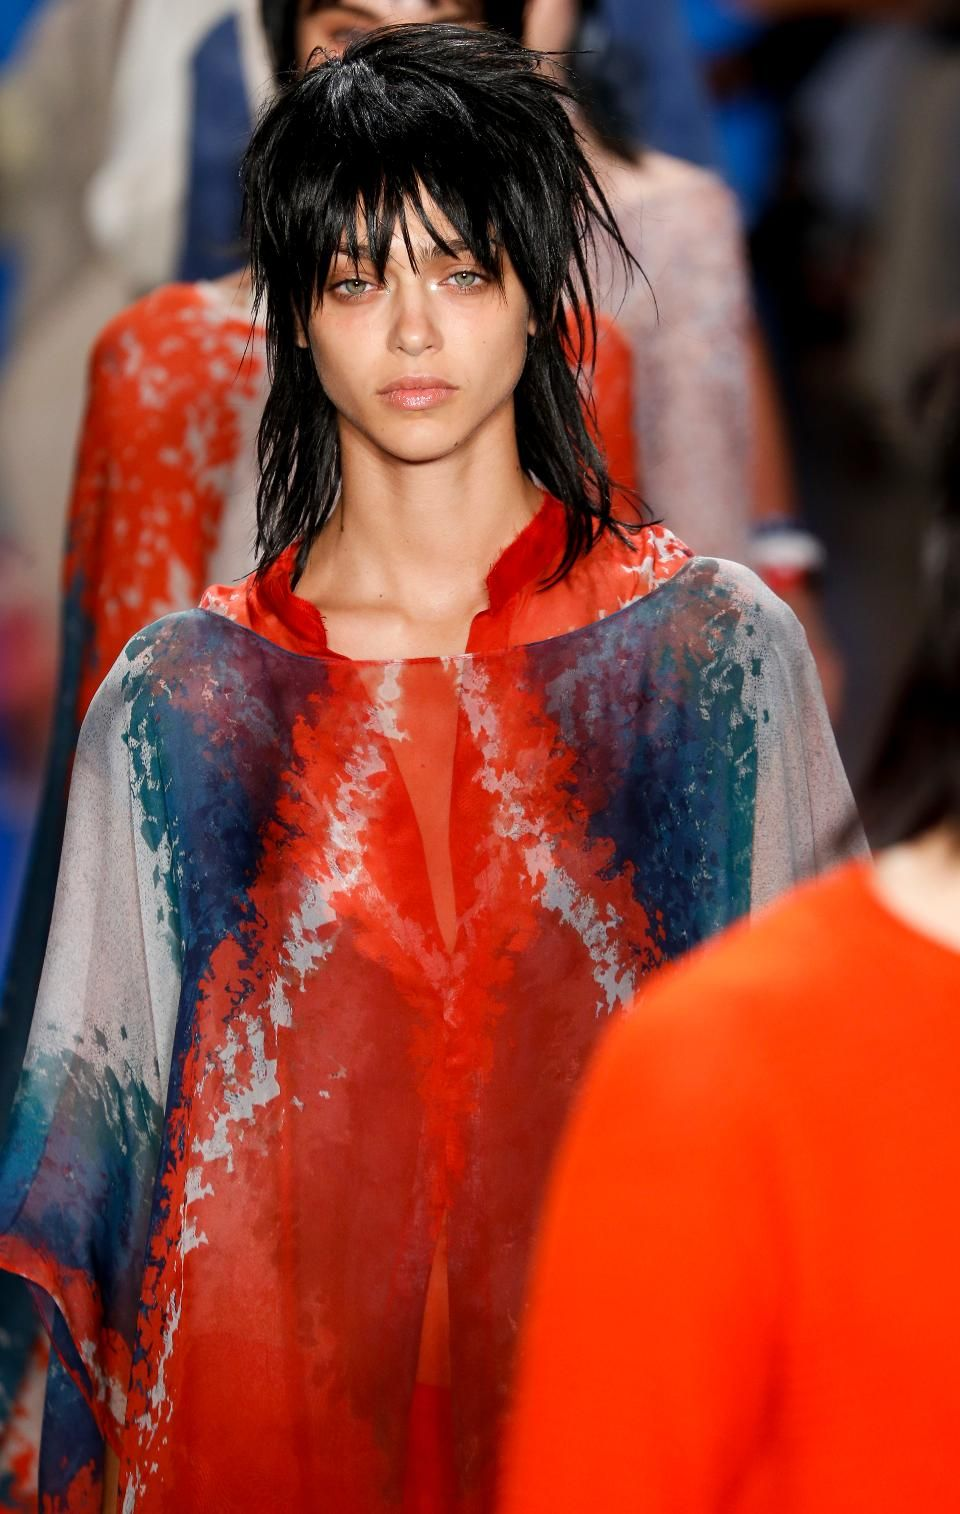 The 4 Key Trends at London Fashion Week Fall/Winter 2018